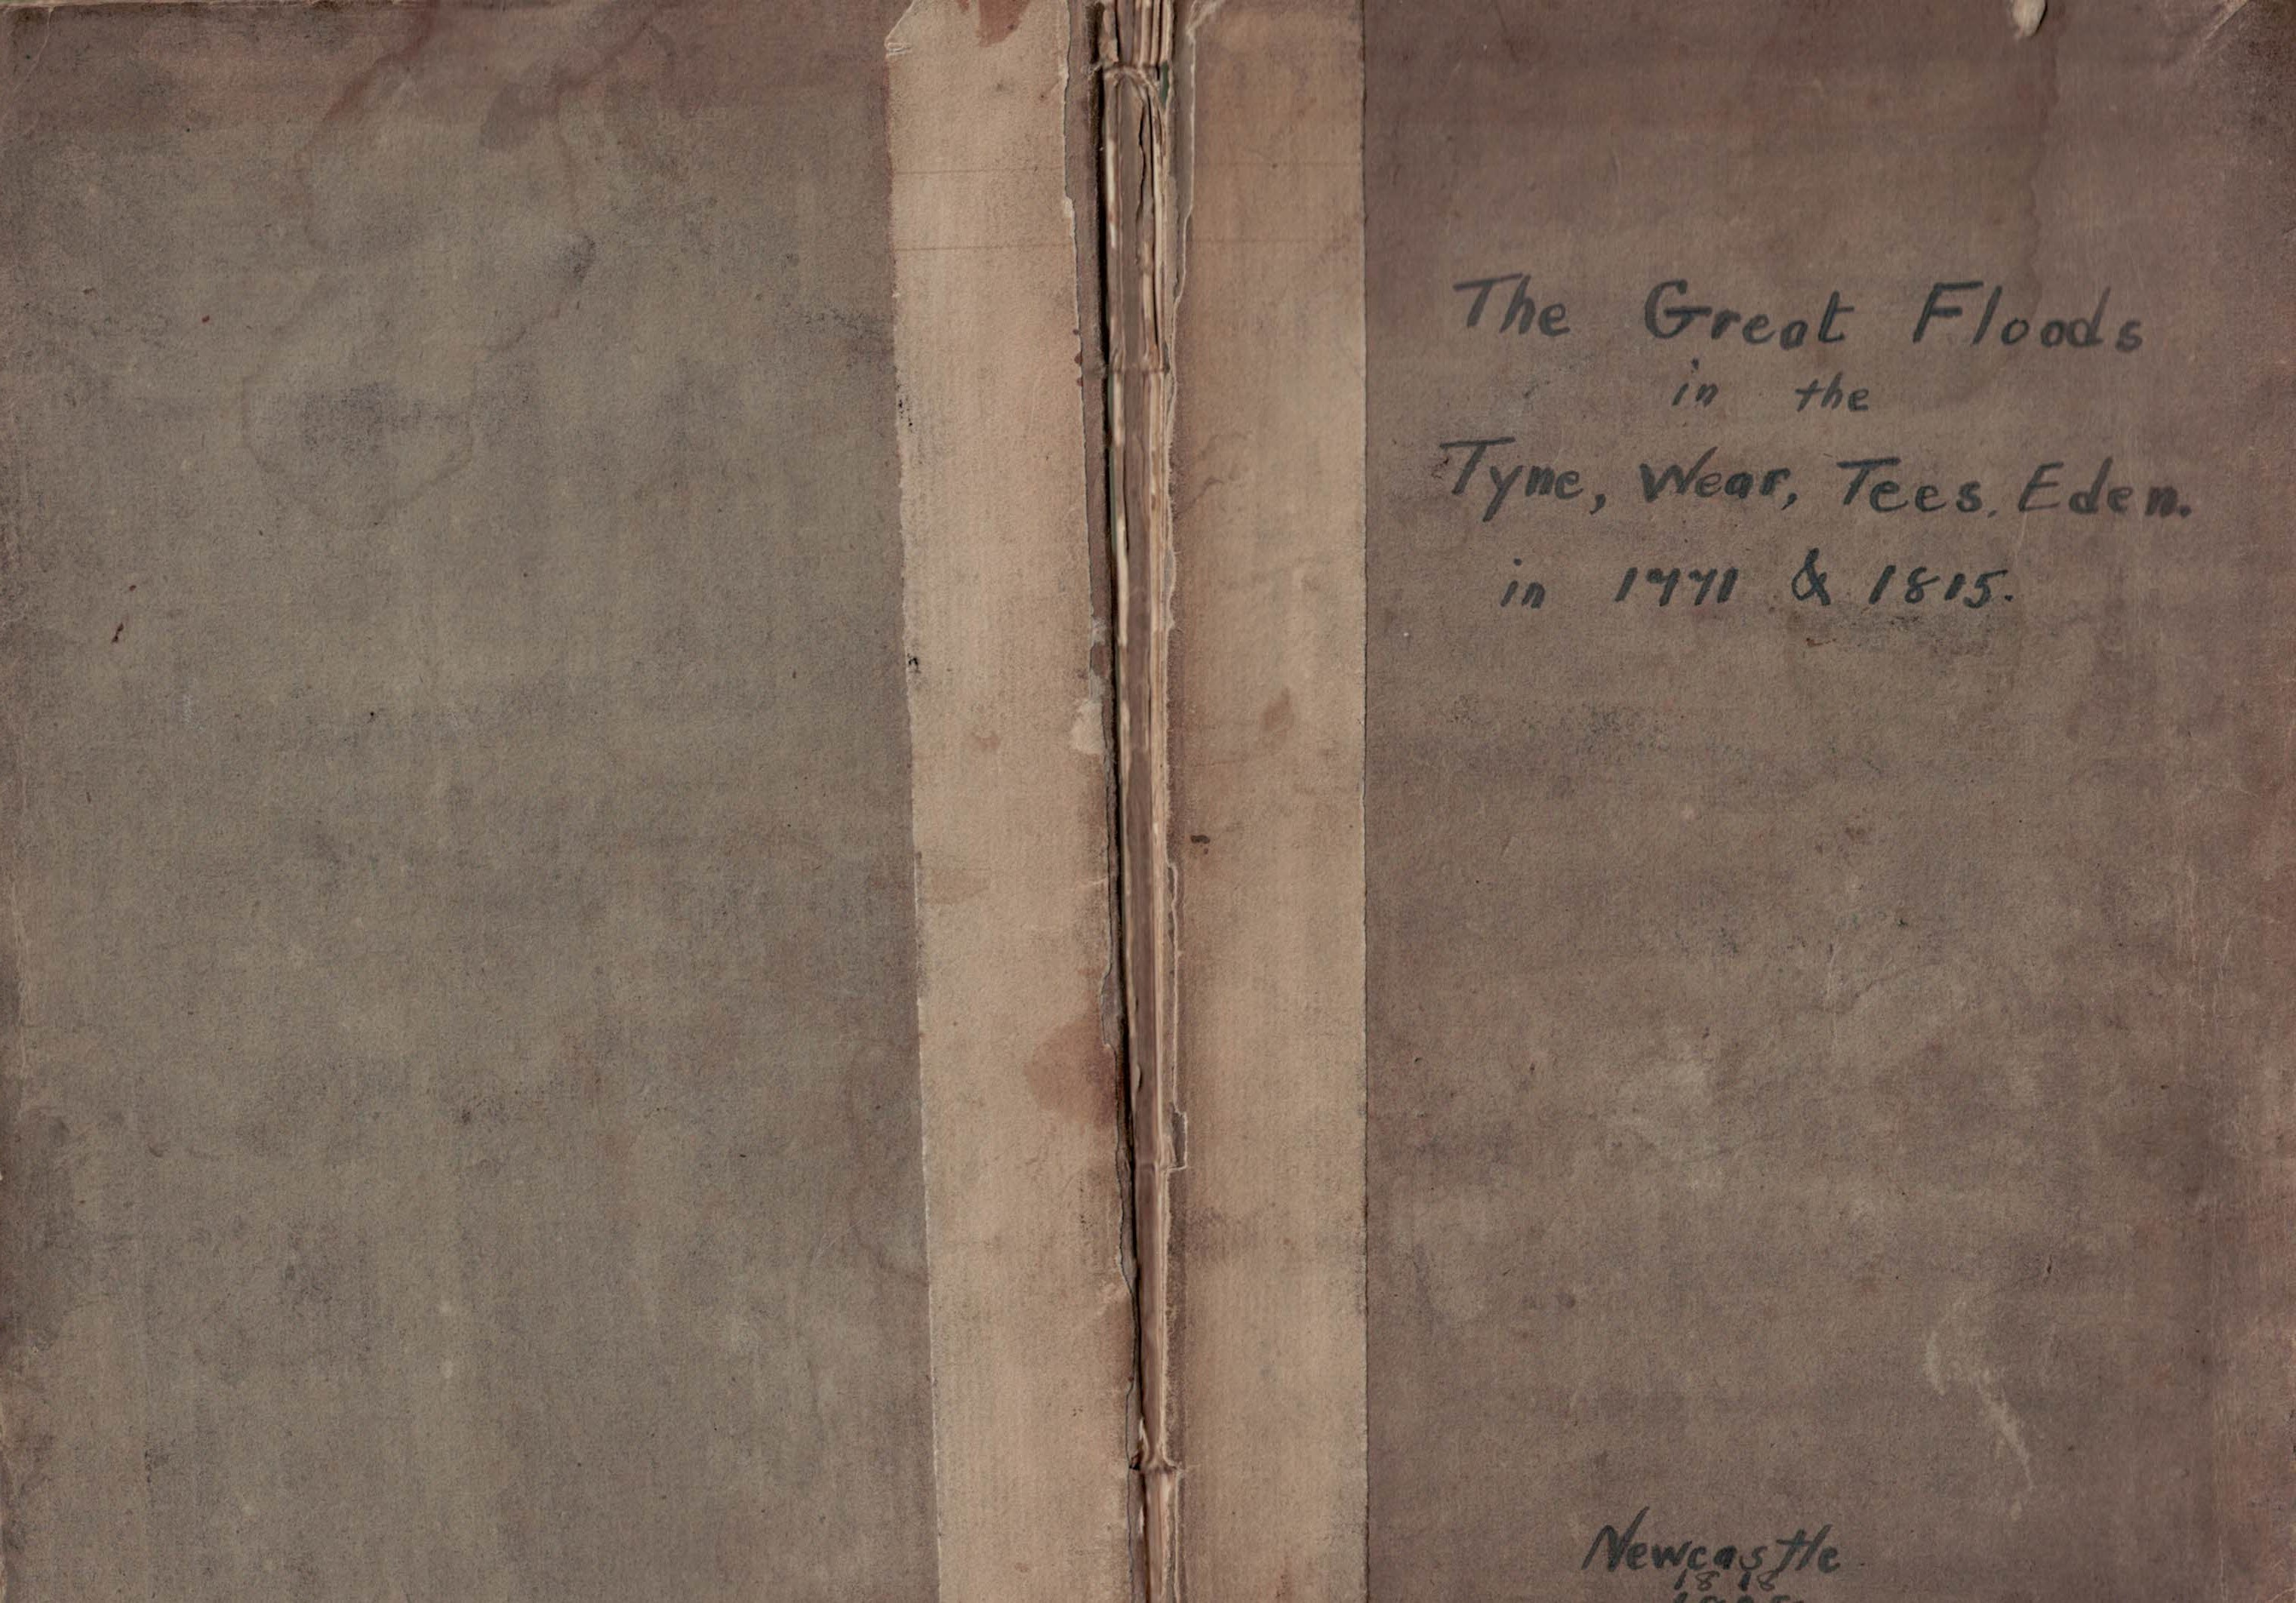 W.G. [WILLIAM GARRET] - An Account of the Great Floods of the Rivers Tyne, Tees, Wear, Eden, &C. In 1771 and 1815